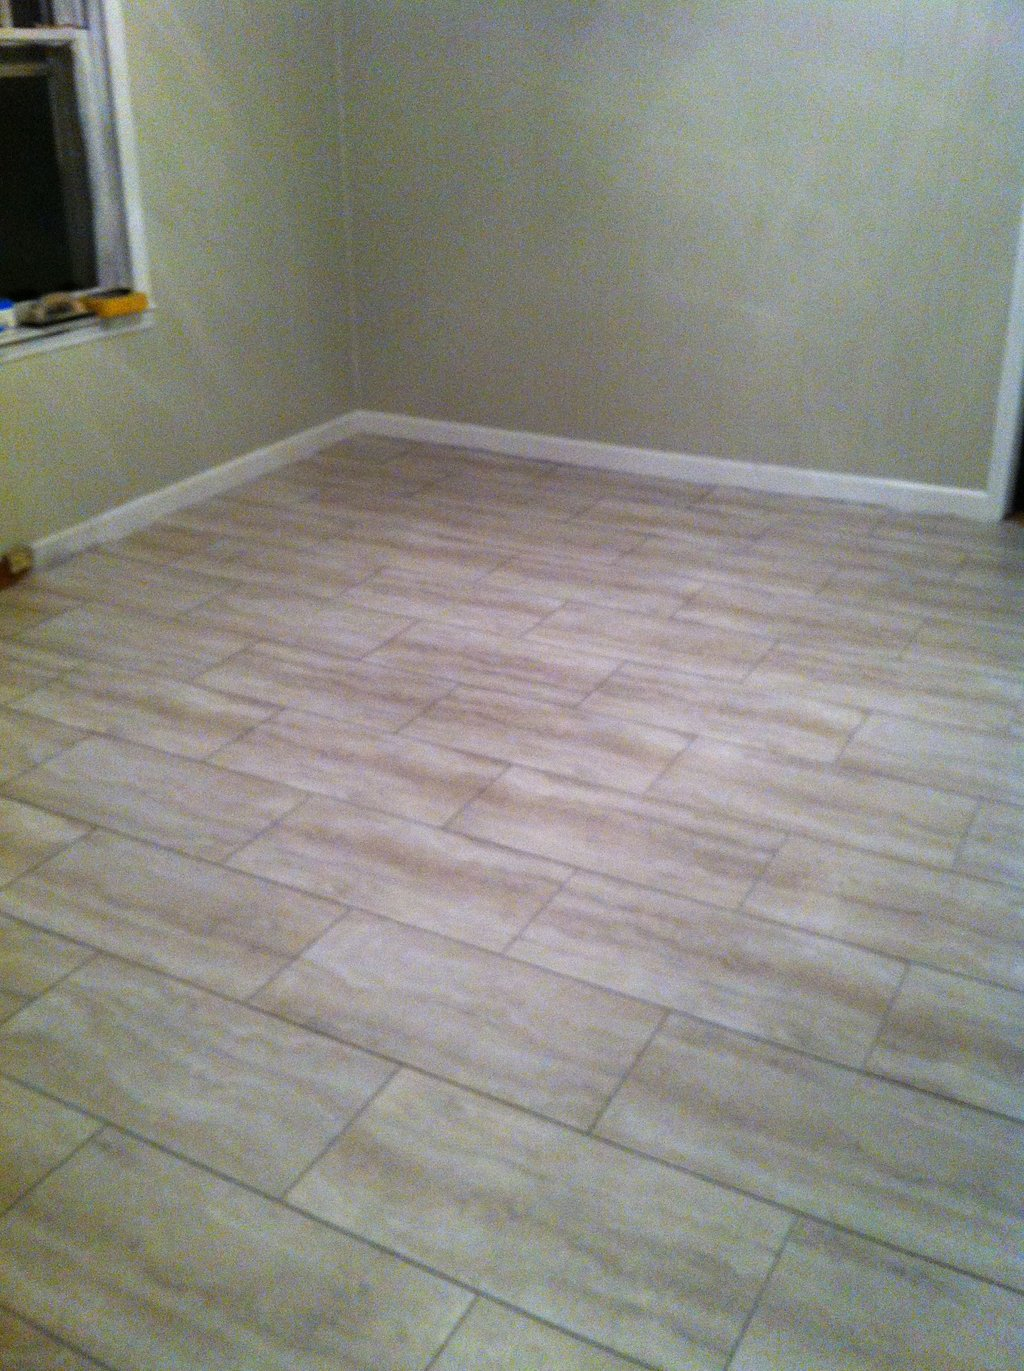 Flooring Project Groutable Luxury Vinyl Tile White Washed Laminate Flooring With Vinegar